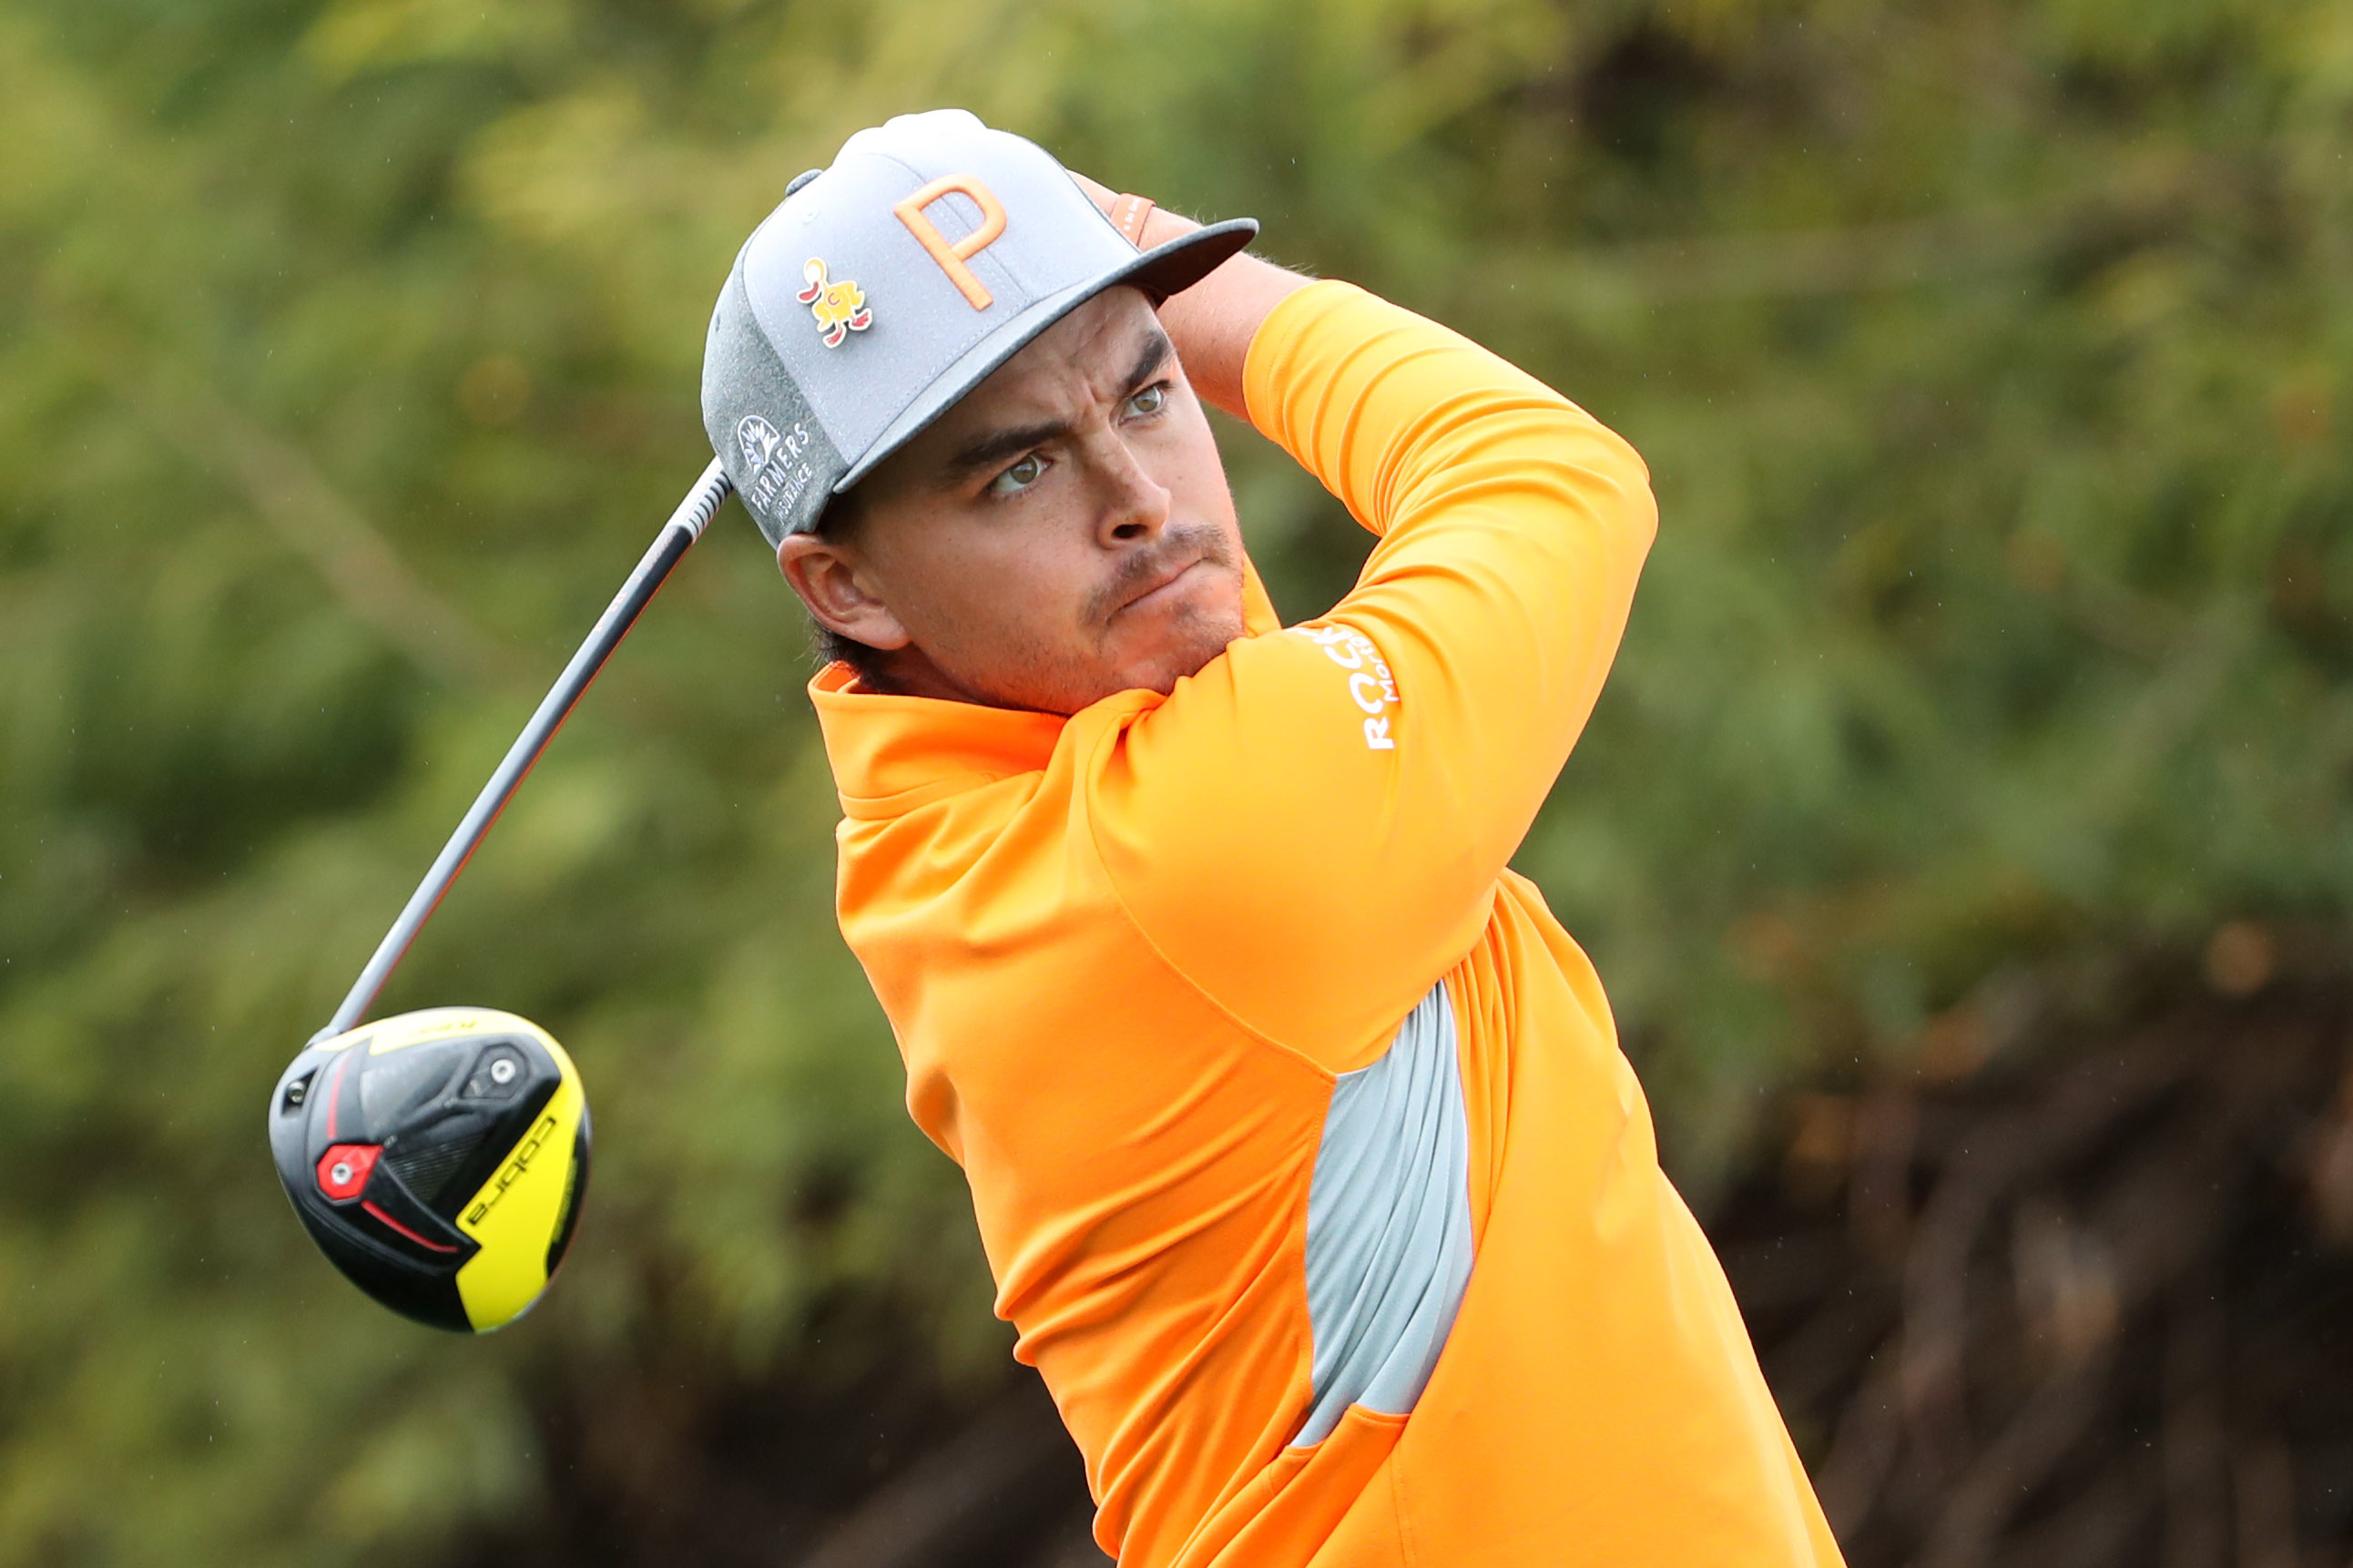 Rickie Fowler What's in the Bag